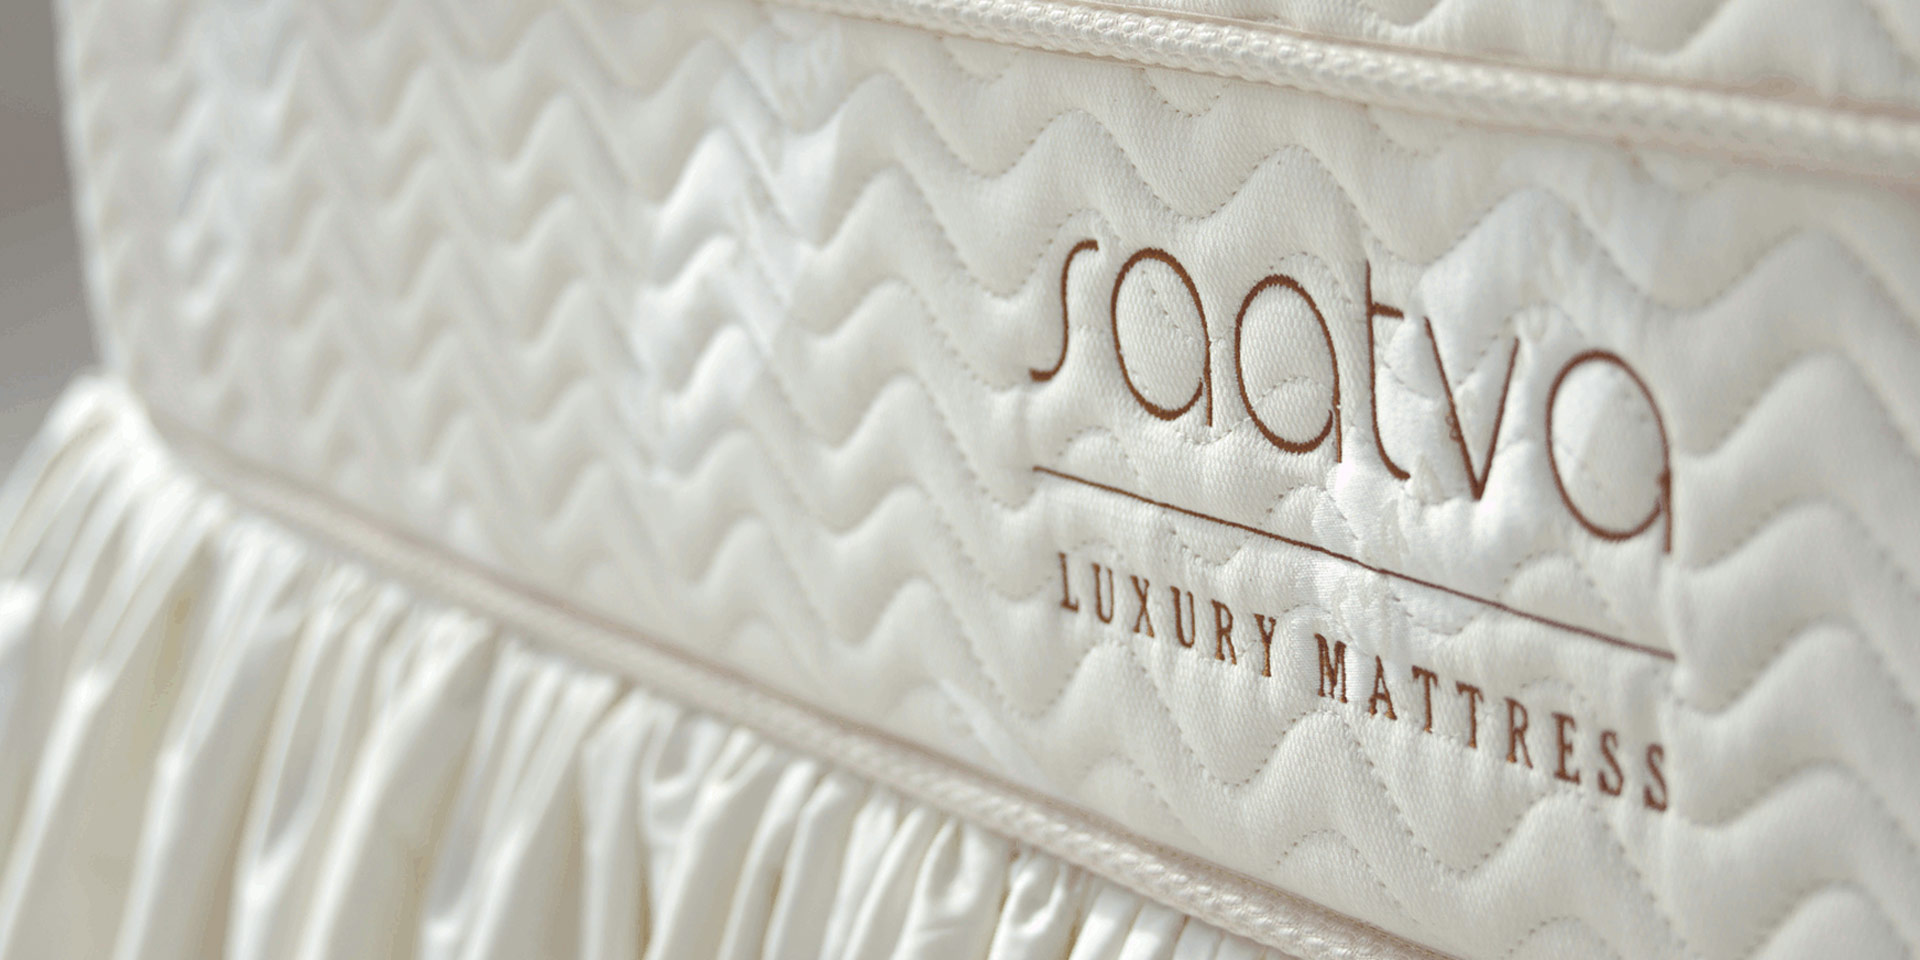 Saatva Mattress Stitching